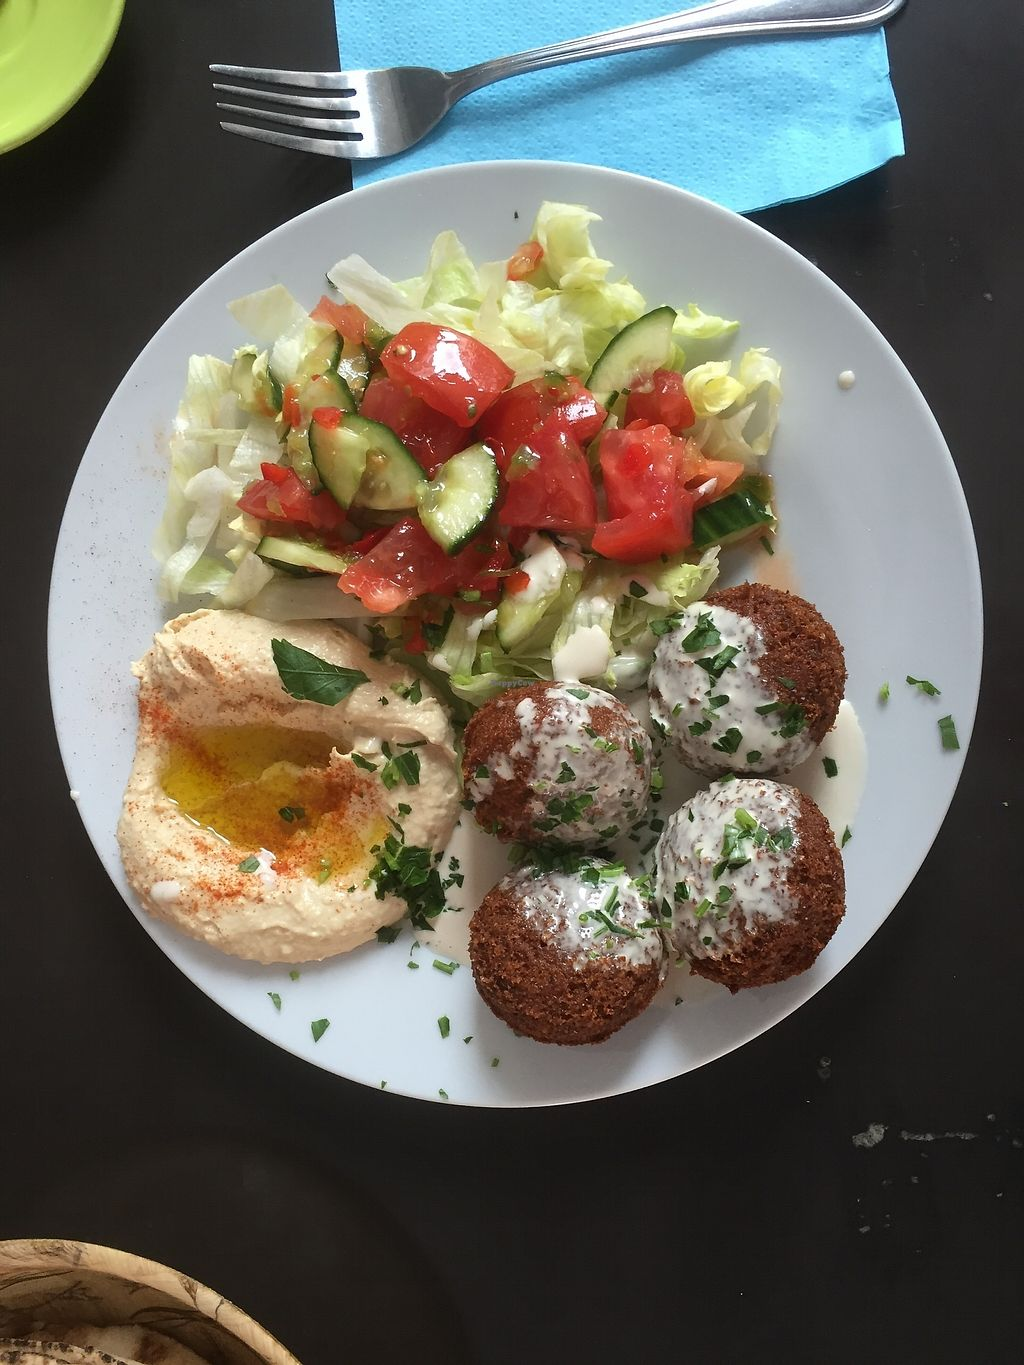 """Photo of VegeOrient  by <a href=""""/members/profile/iokan"""">iokan</a> <br/>Small falafel plate <br/> September 10, 2017  - <a href='/contact/abuse/image/61214/302852'>Report</a>"""